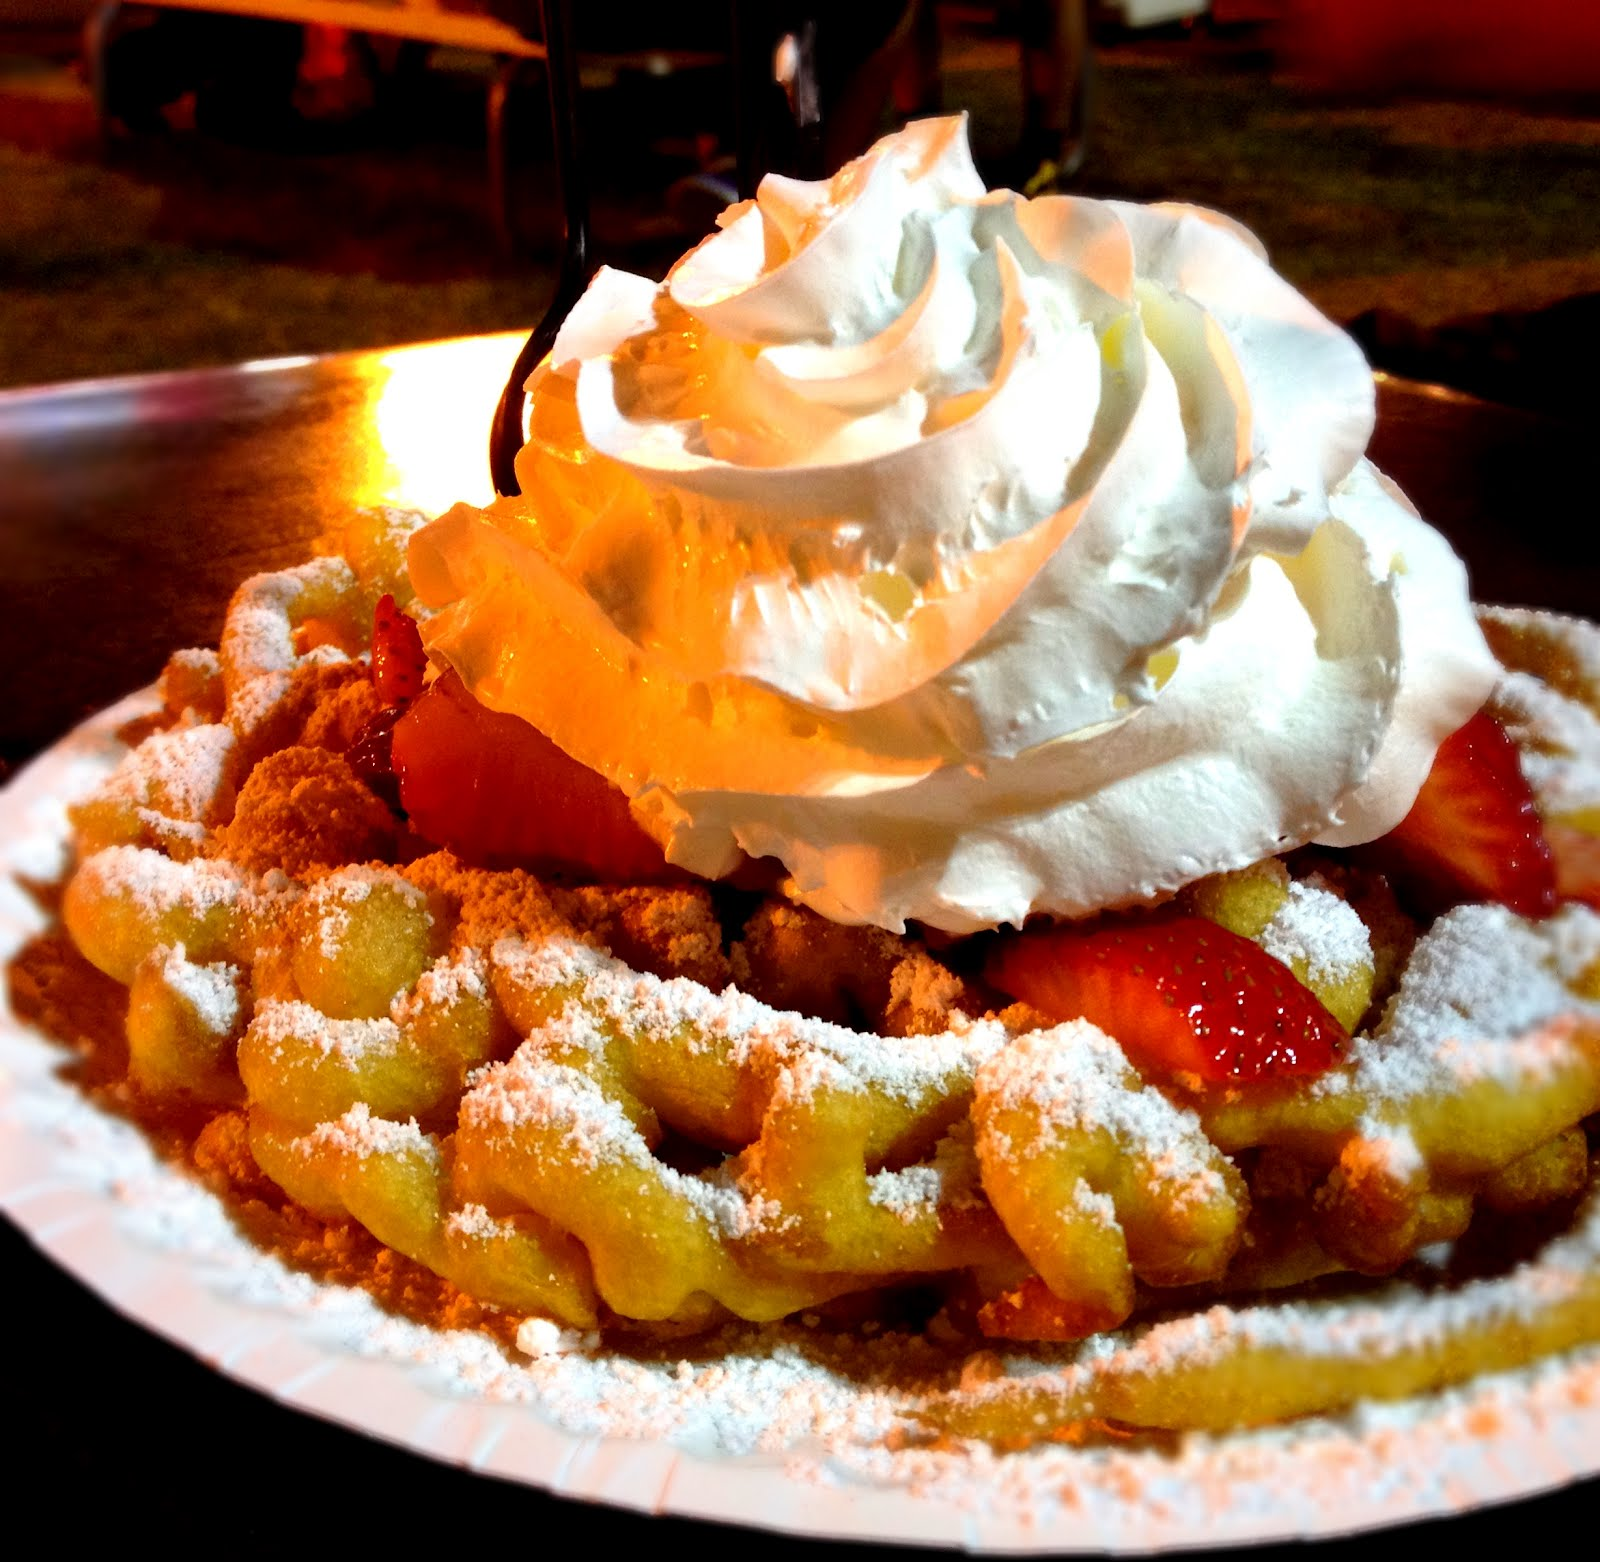 Monster Munching: Funnel Cakes at The Lazy Toucan - Costa Mesa